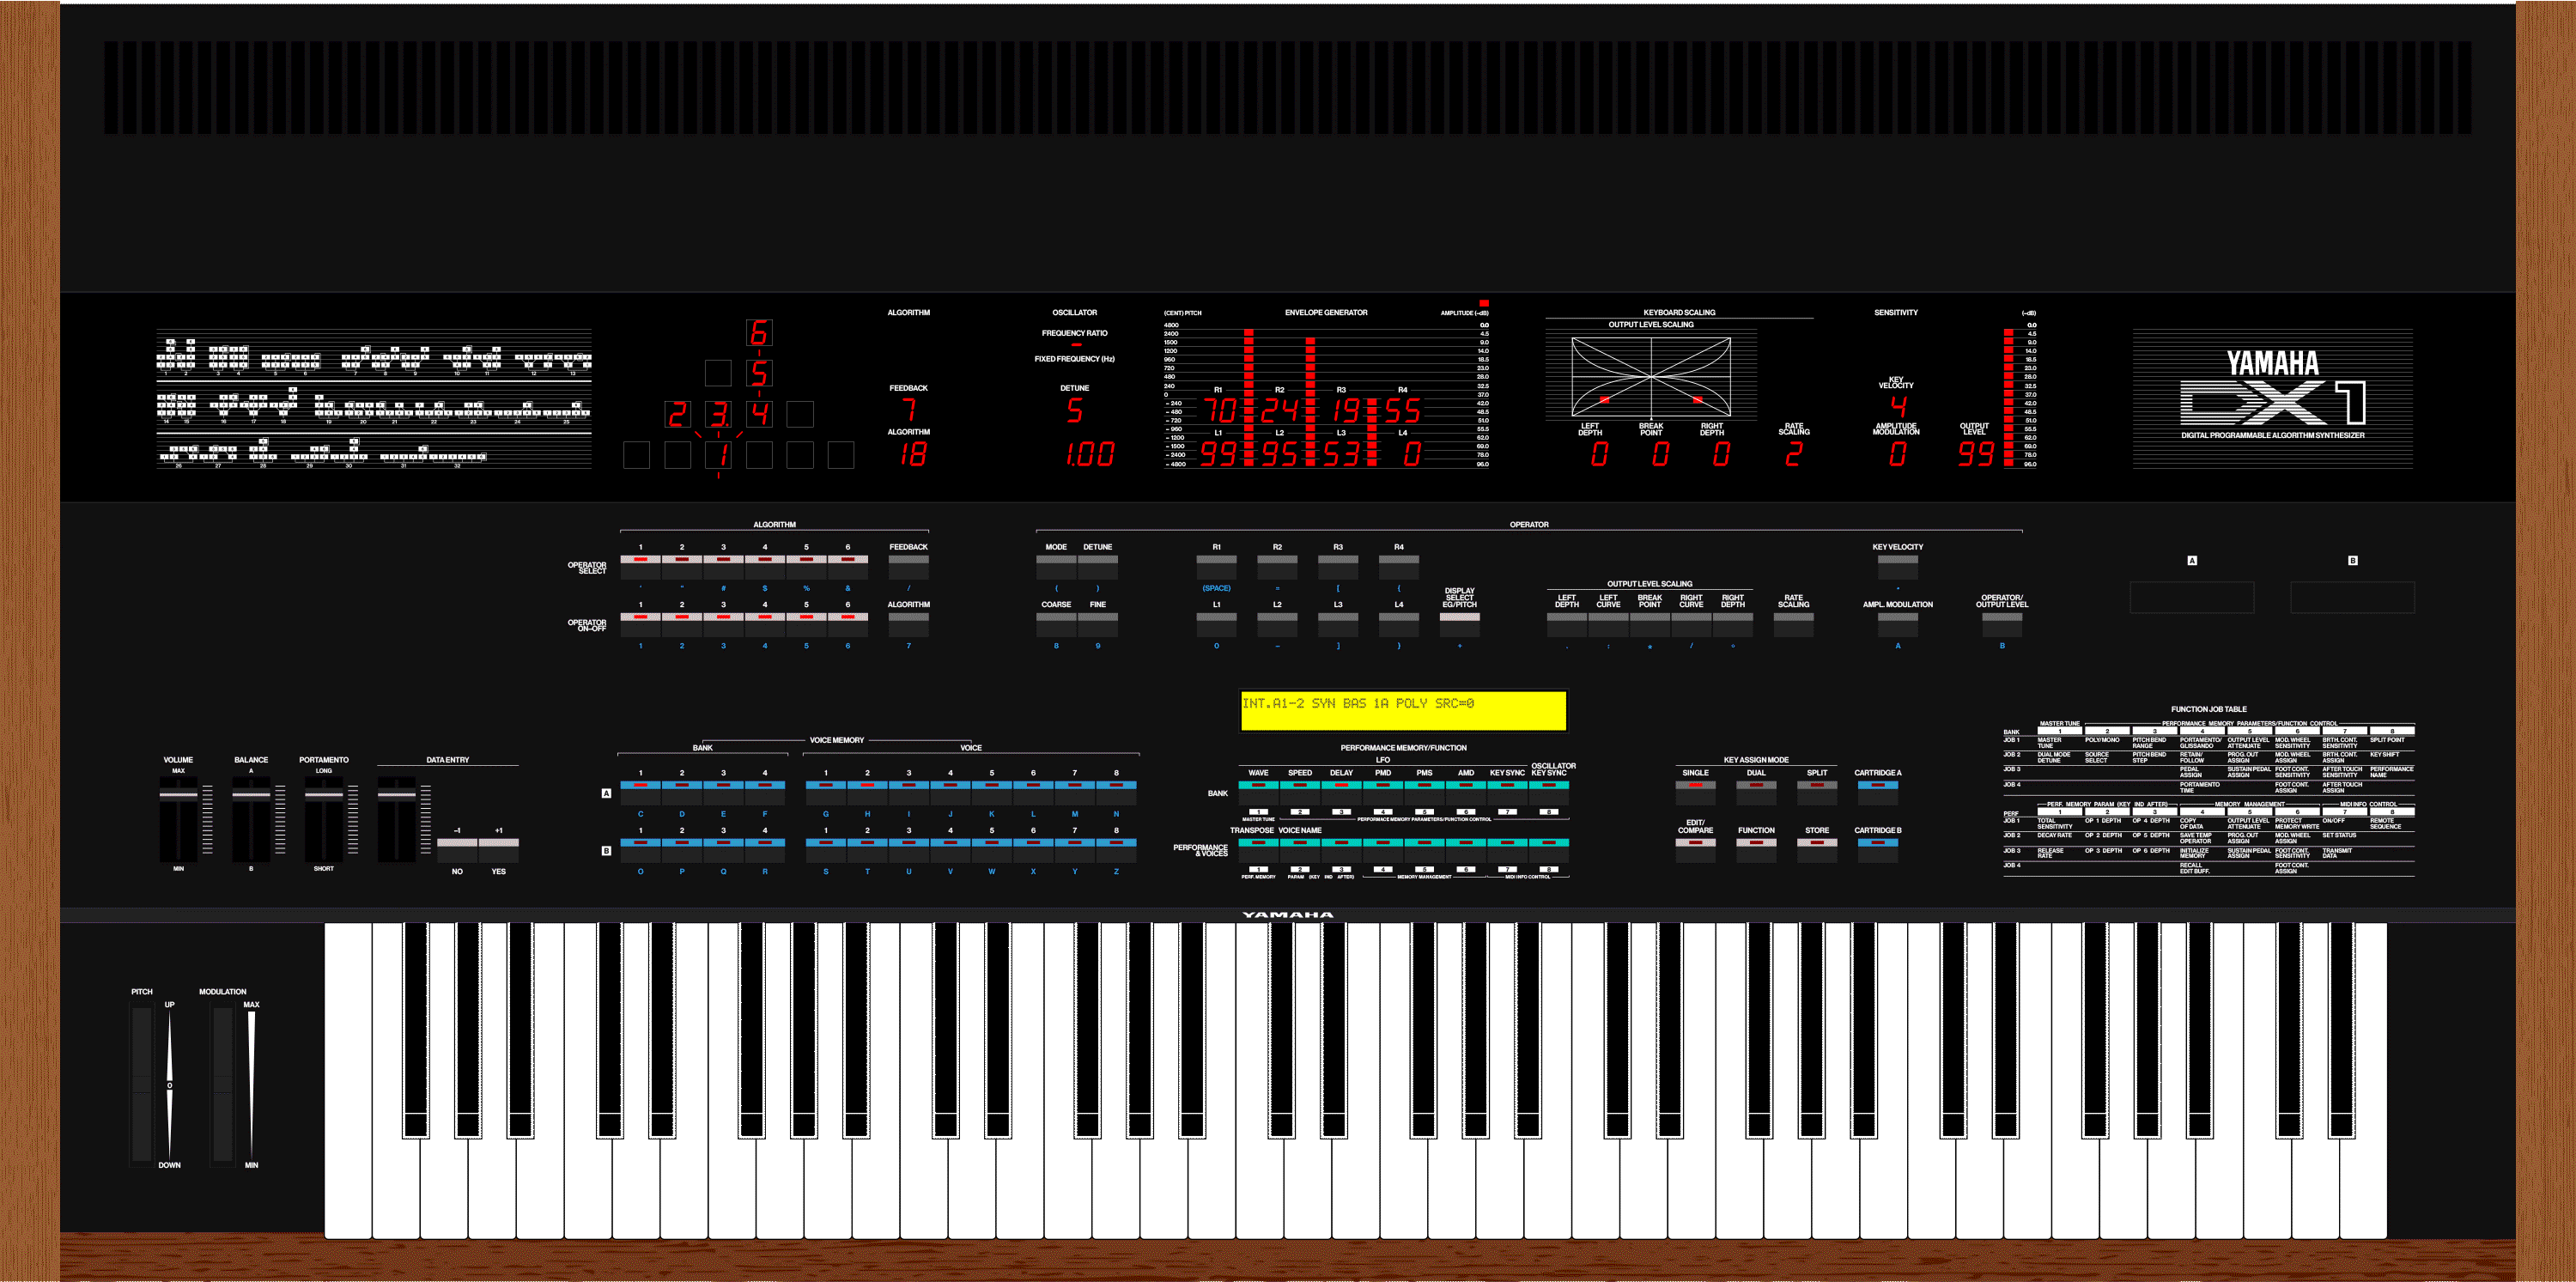 Yamaha DX1 synthesizer